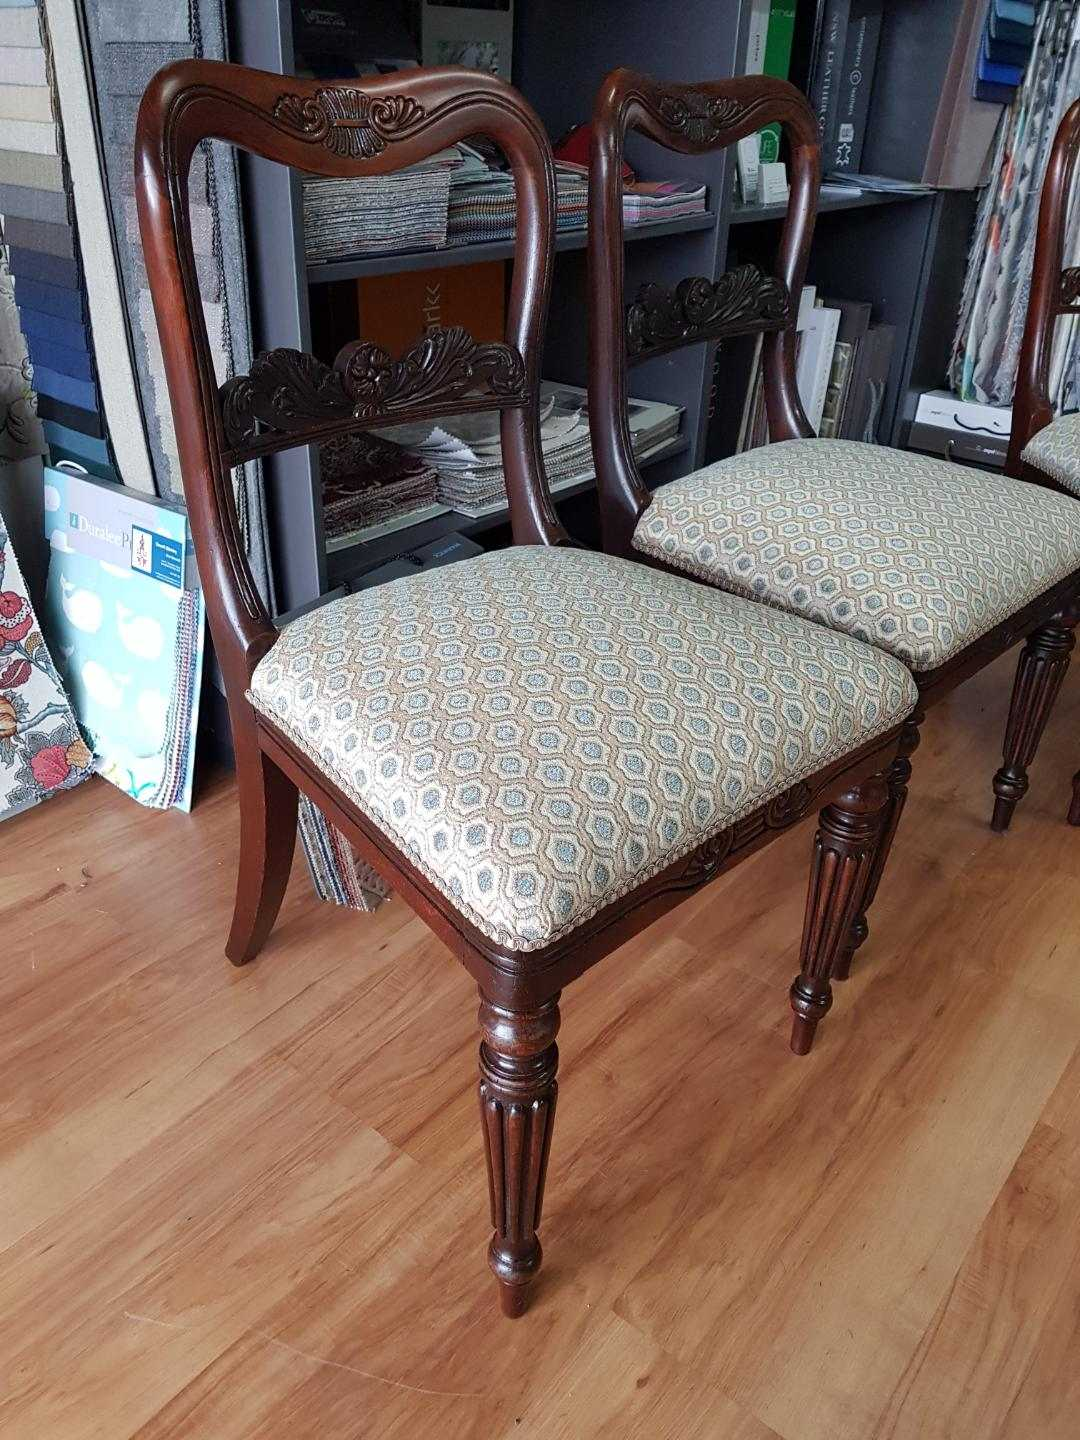 Furniture Stores Canberra Ebsworth Upholstery Queanbeyan And Canberra Upholstery Services